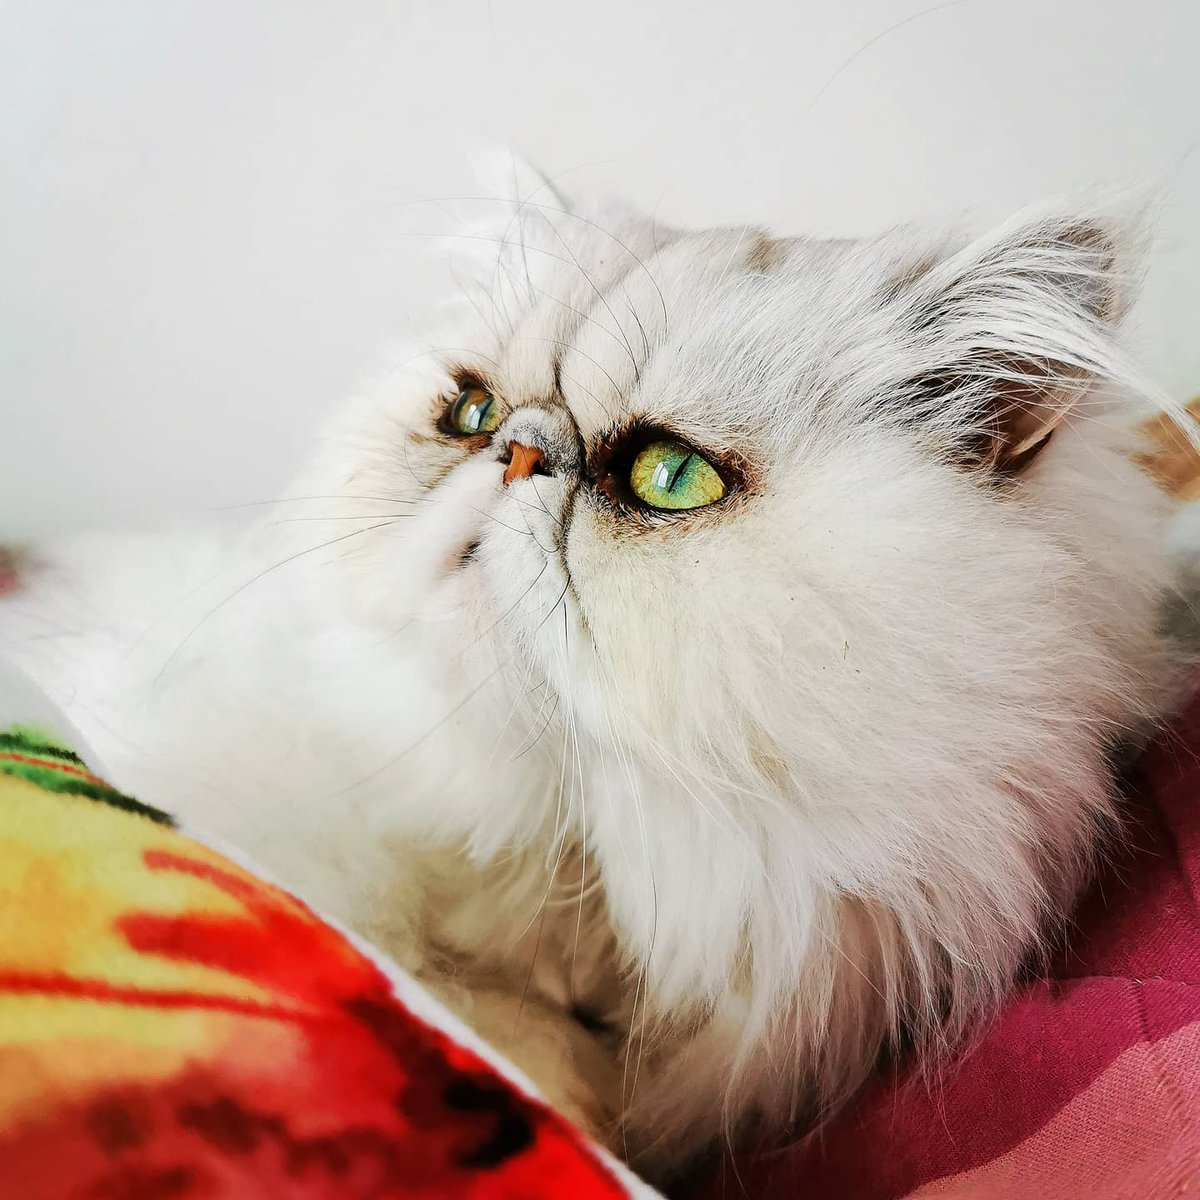 my Lycy #catsofinstagram #persiancat #persian #instacat #greeneyes #besitiful #silvershade #pinknose #fluffy #fluffyfur #happycat #mylife #mylove #mybaby #mylife #love  #beautifuleyes #beautifulbaby #white #whitecat #crazycatlady #mycatisbetterthanyours #ねこちゃん #ねこ #愛pic.twitter.com/02Vo3qPOzK